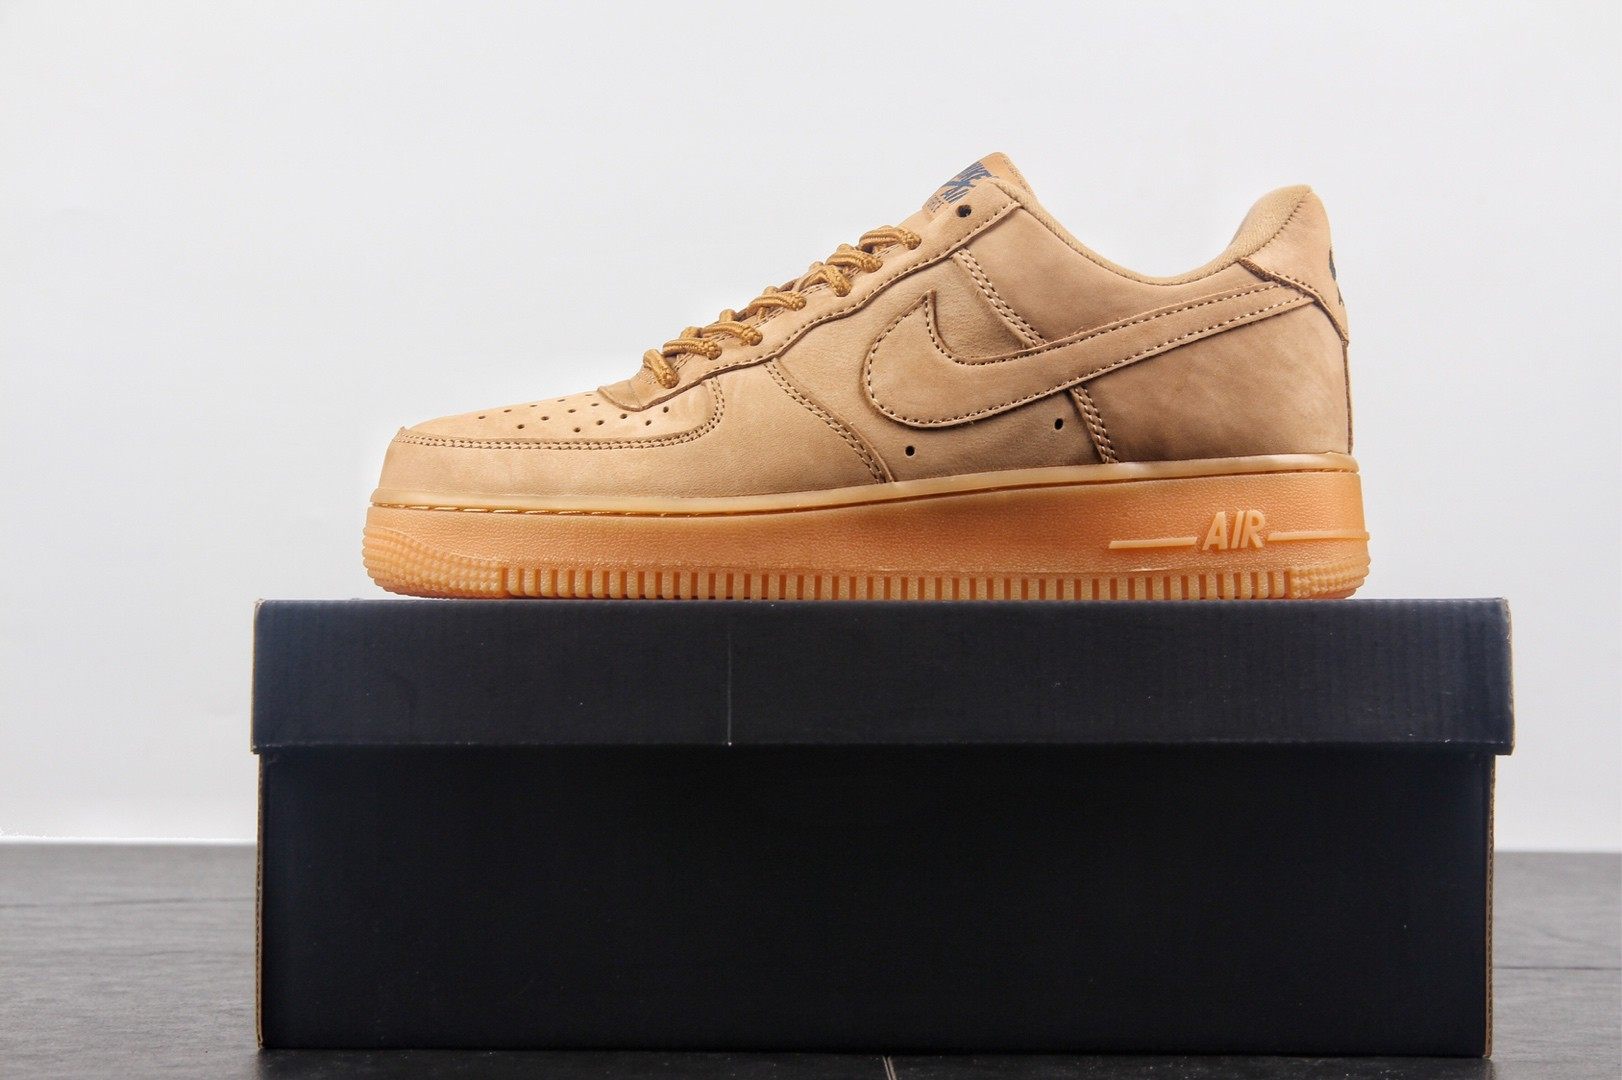 meilleur service 07a3b 21b40 Nike Air Force 1 Material,Nike Air Force 1s Wheat,Upper Suede Edition Nike  Air Force 1 Low AF1 Wheat Air Force One Skate shoes